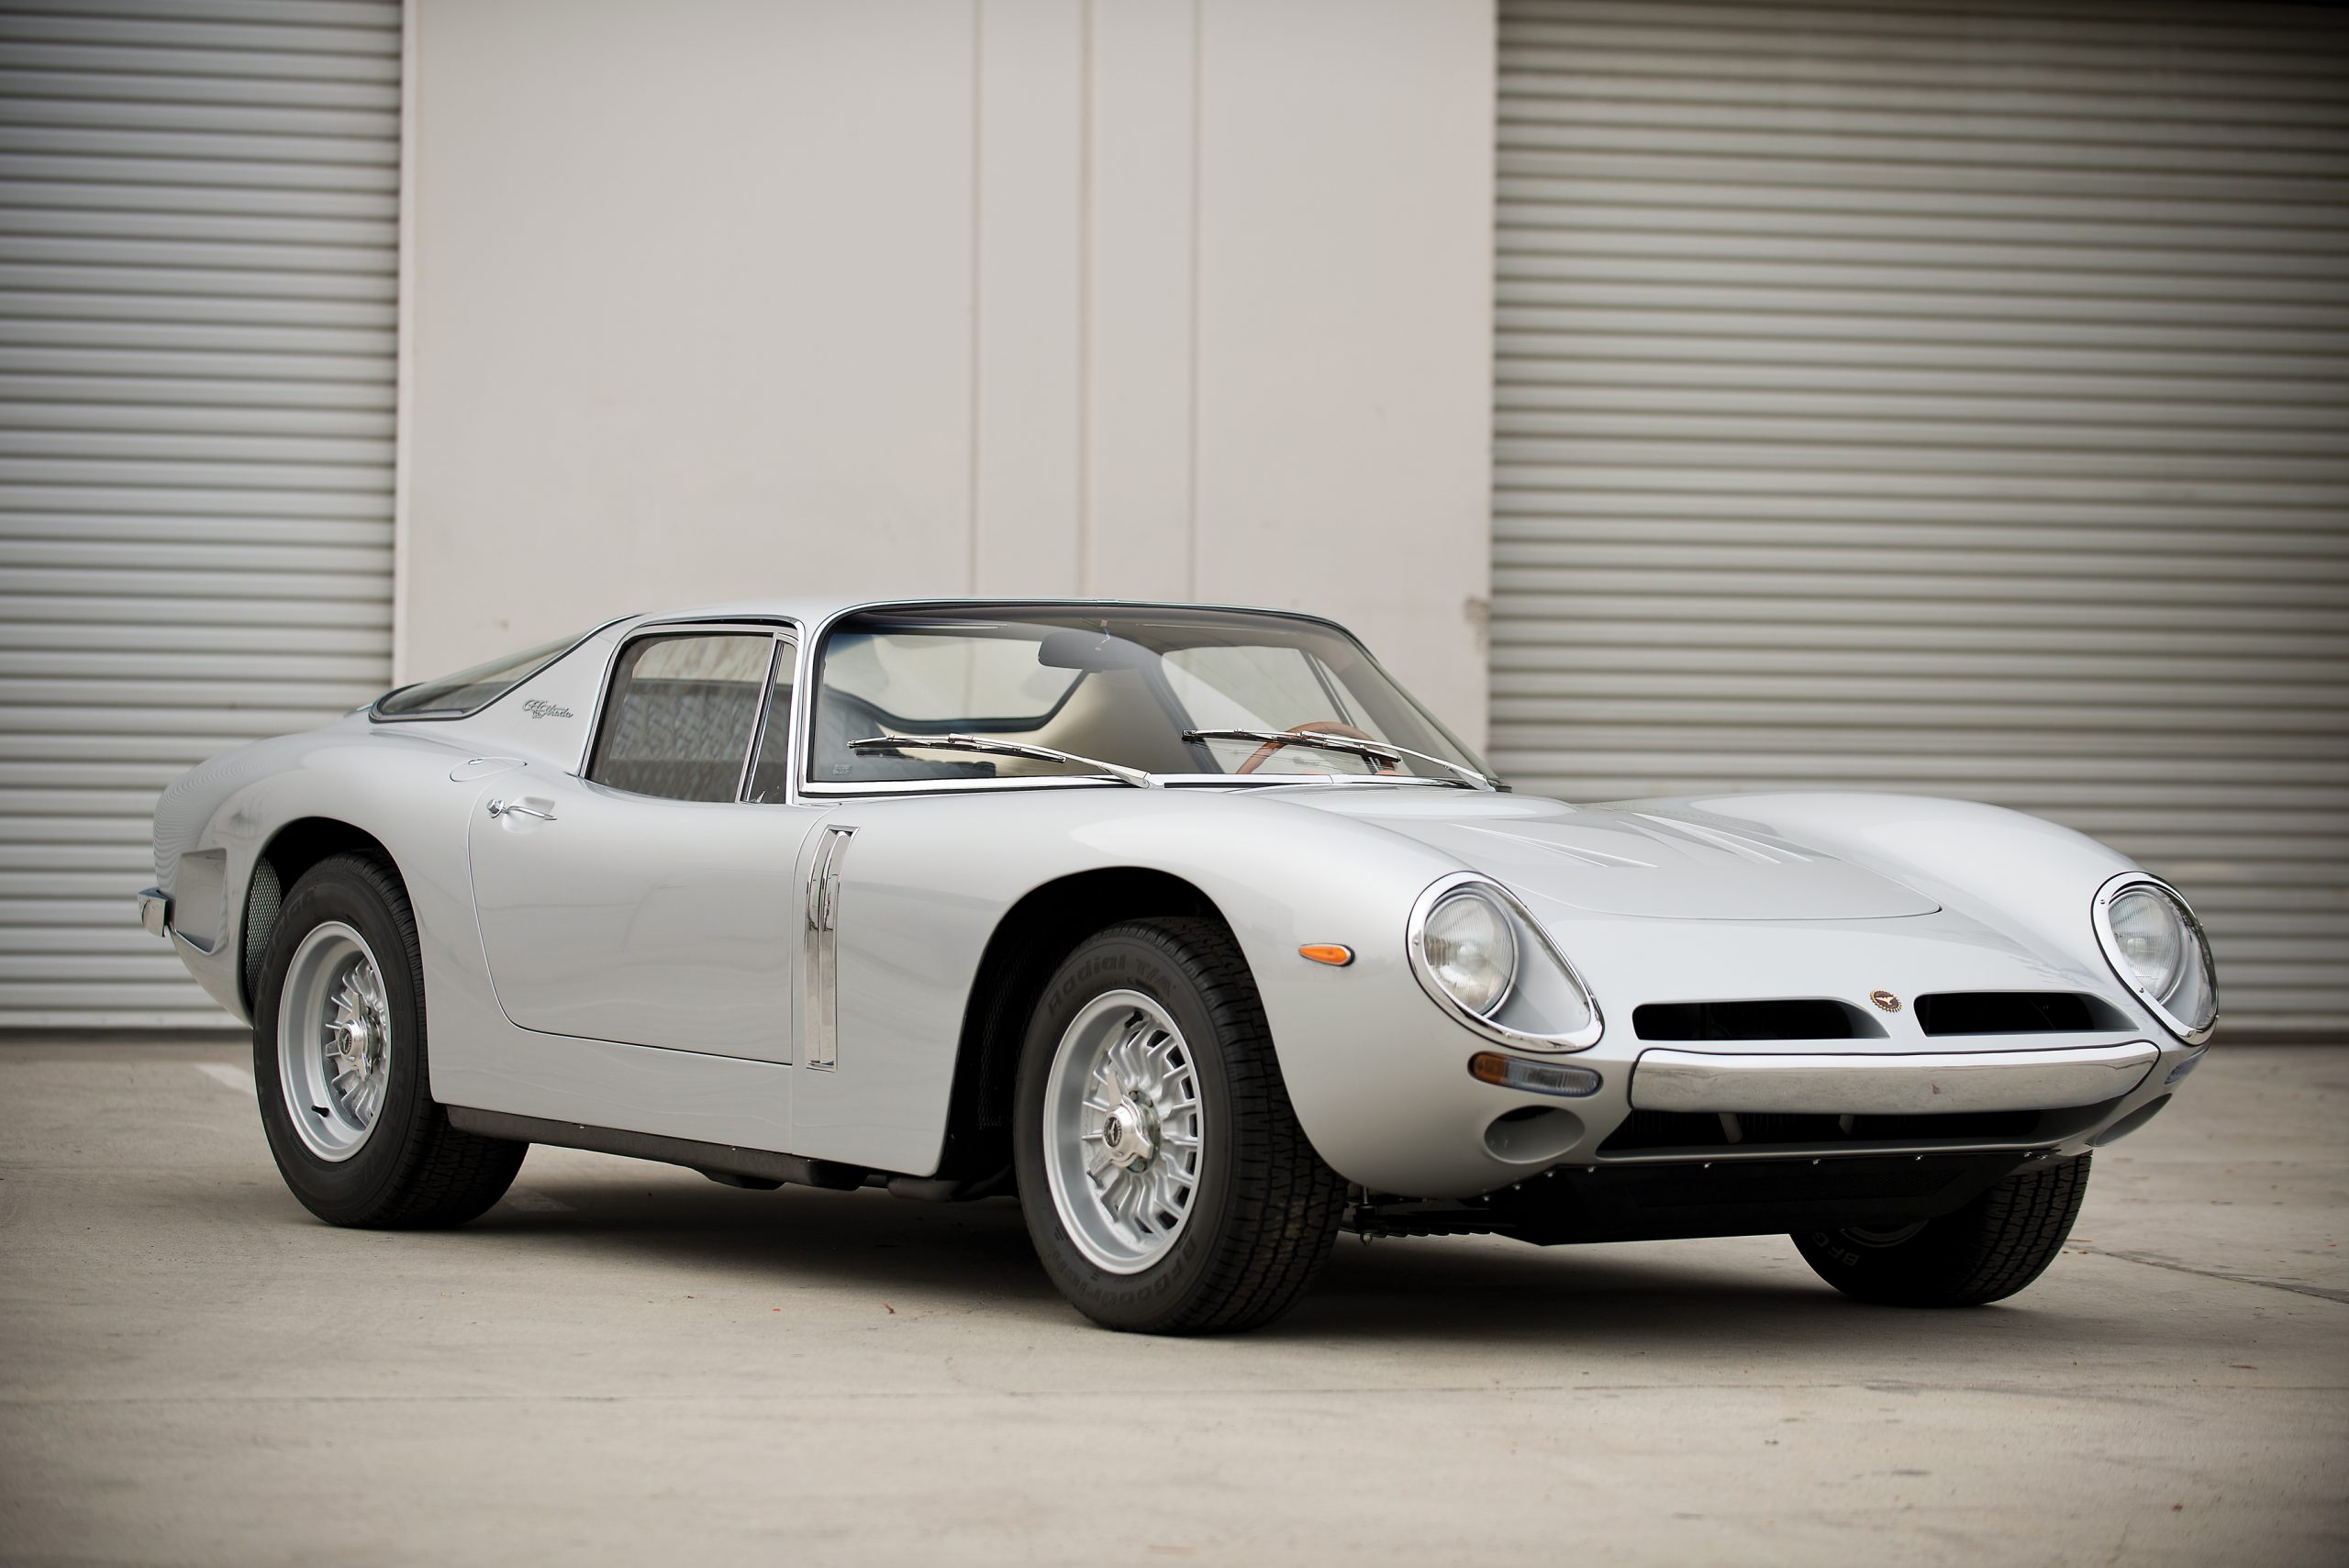 1965 Bizzarrini 5300 GT Strada Alloy front three quarter